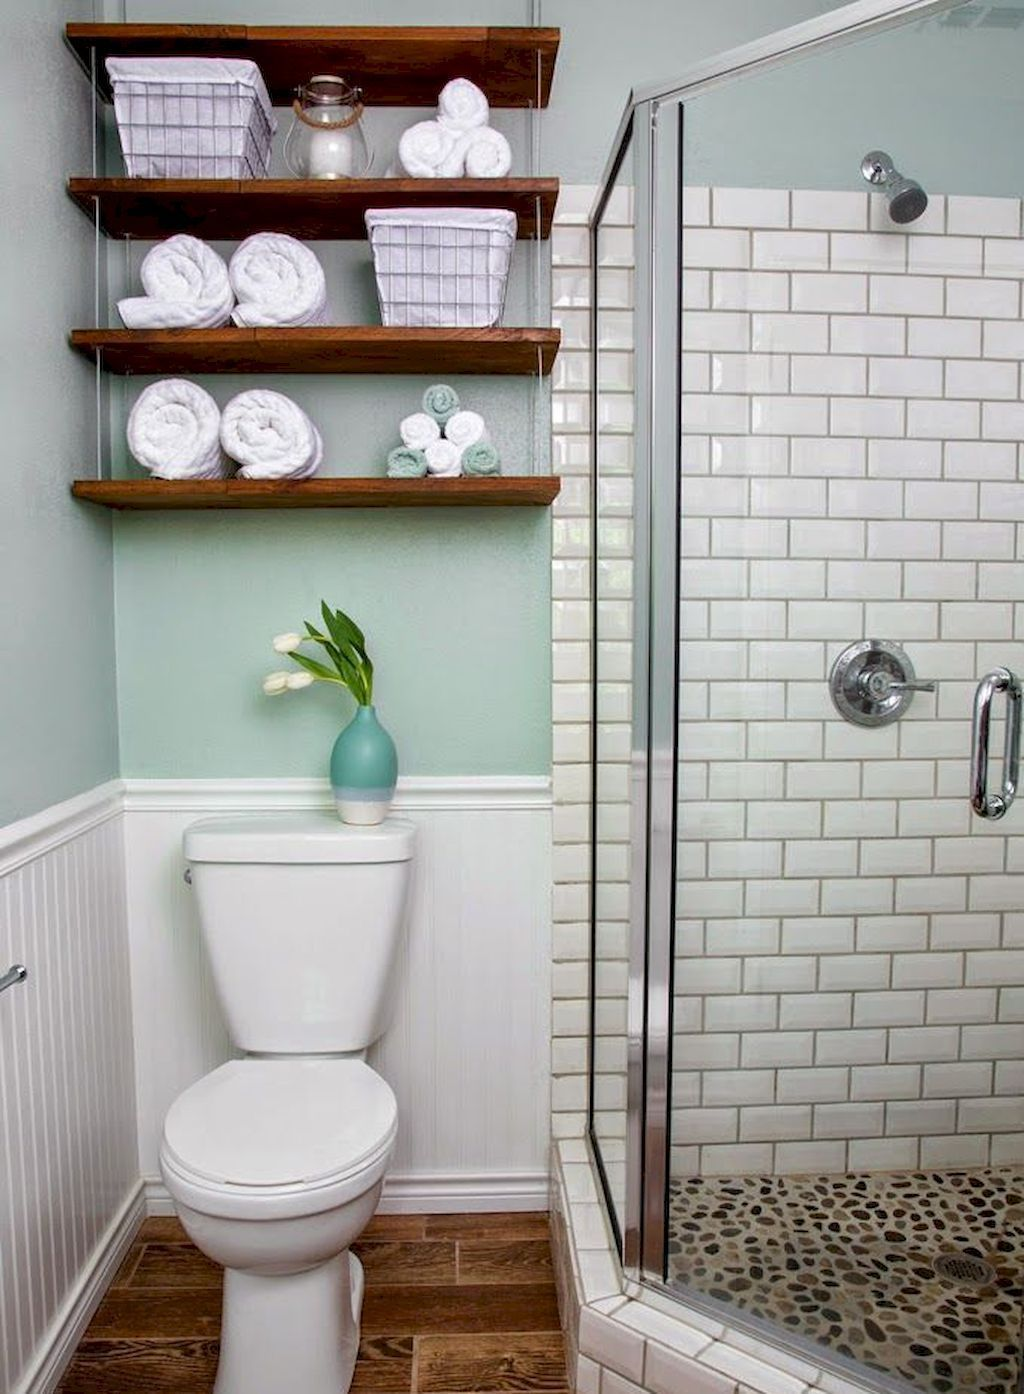 35 Beautiful Small Bathroom Decor Ideas on A Budget in ...